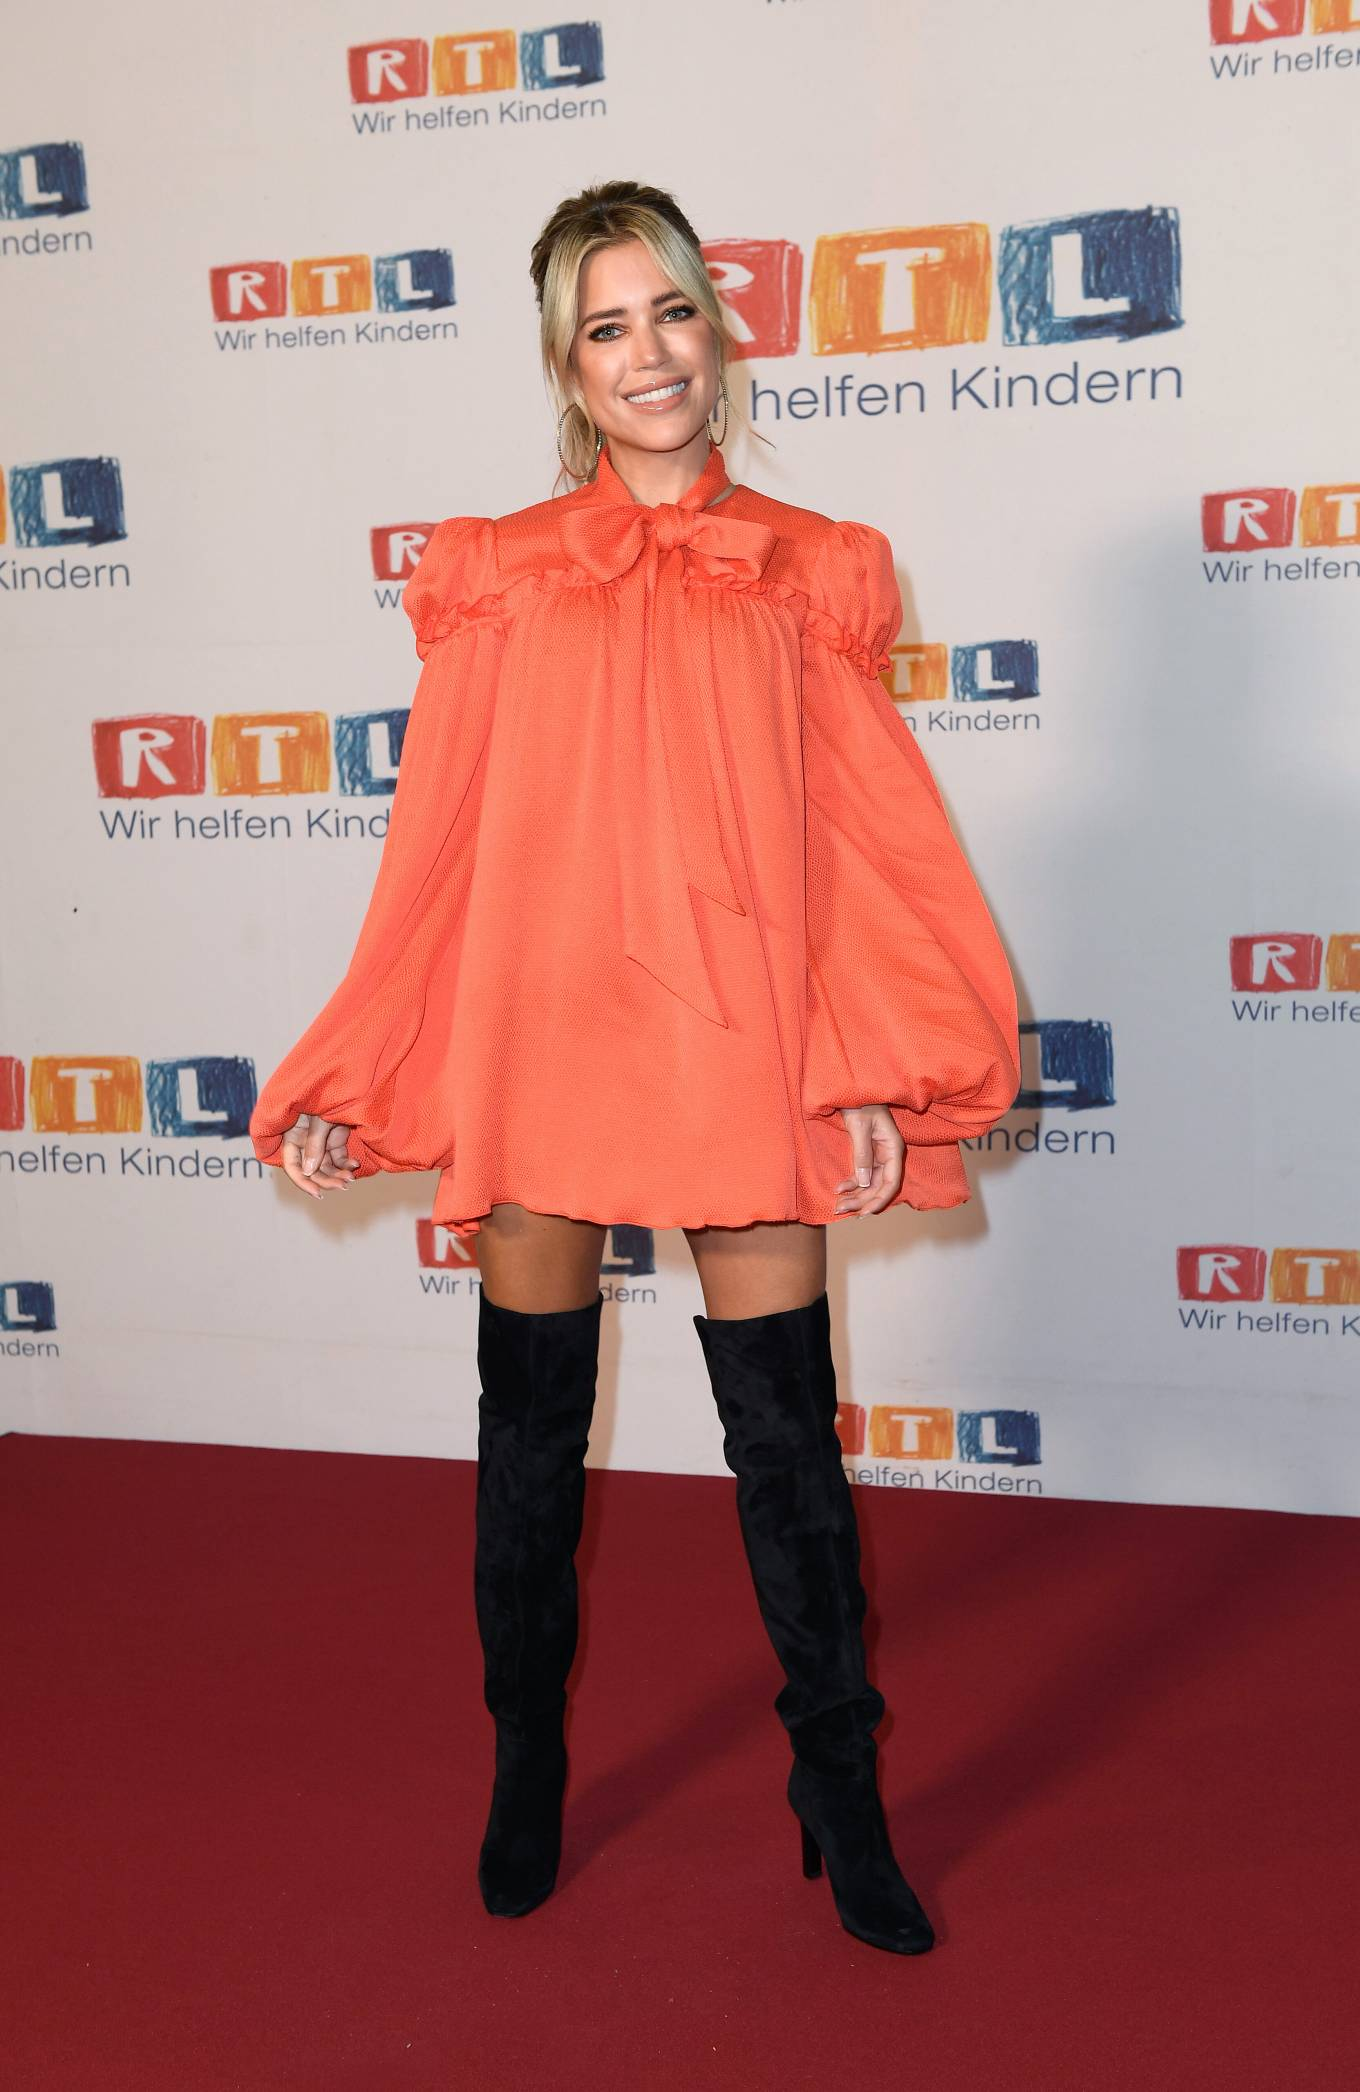 Sylvie Meis 2020 : Sylvie Meis – Red carpet at 2020 RTL Telethon in Huerth-09